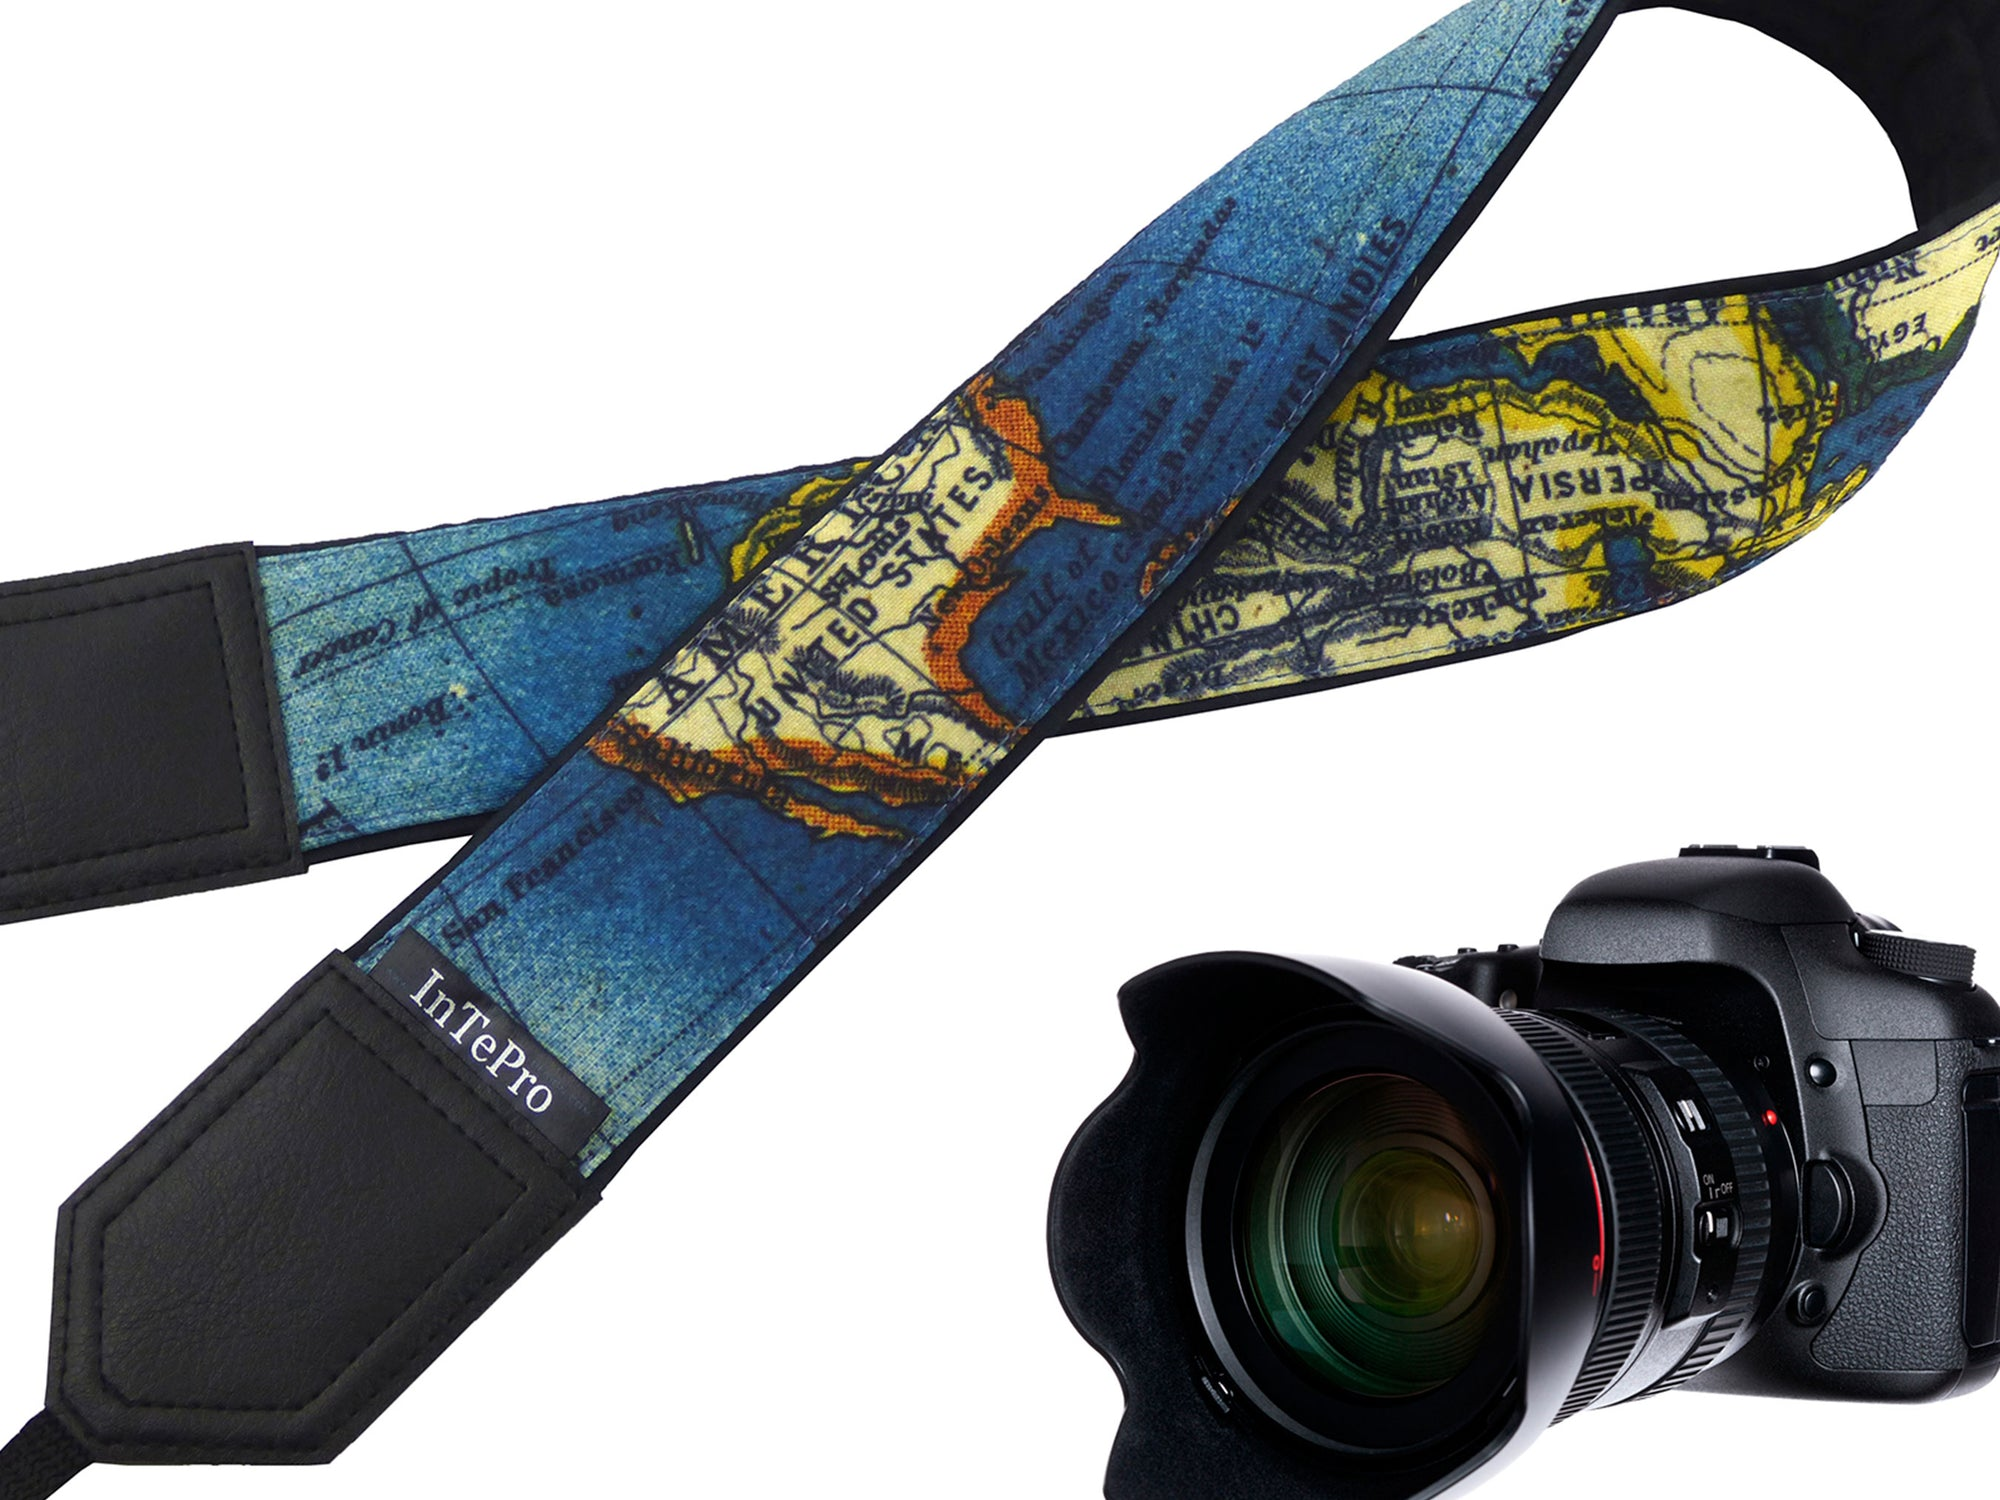 InTePro personalized camera strap for DSLR and mirrorless Cameras with Vintage map design. Camera accessory for photographers and travelers.